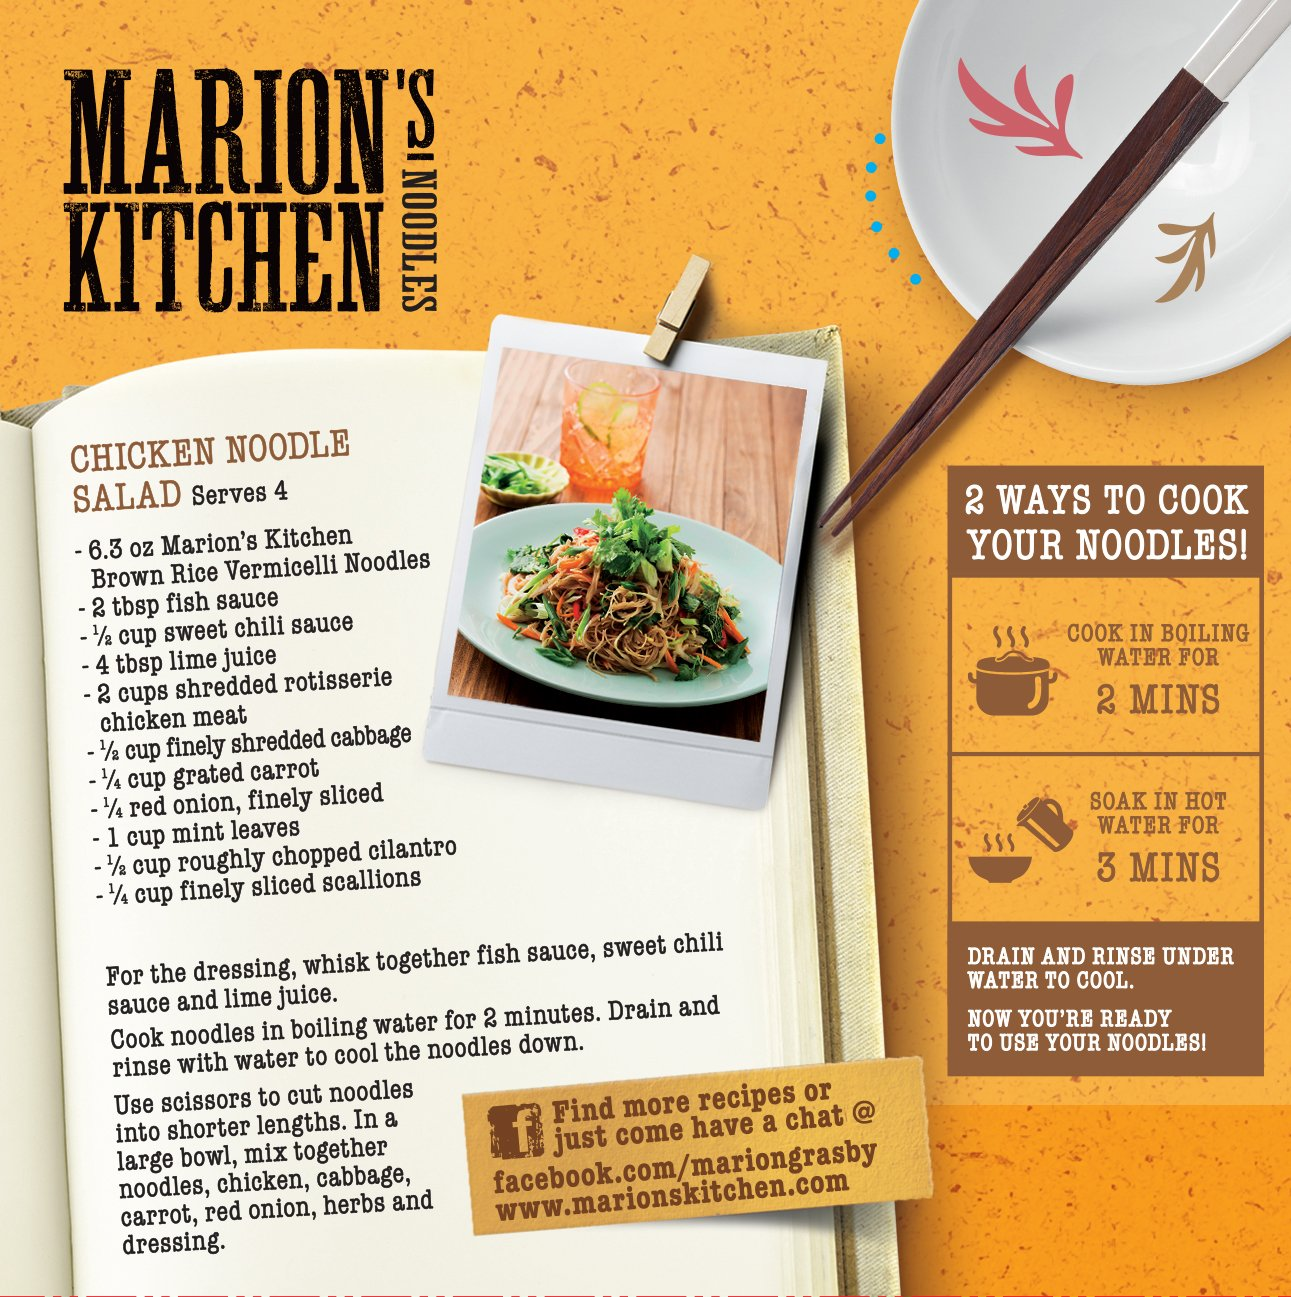 Amazon : Premium Brown Rice Vermicelli Noodles, Bulk 6 Pack, Marion's  Kitchen Whole Grain All Natural Gluten Free Noodles : Grocery & Gourmet Food